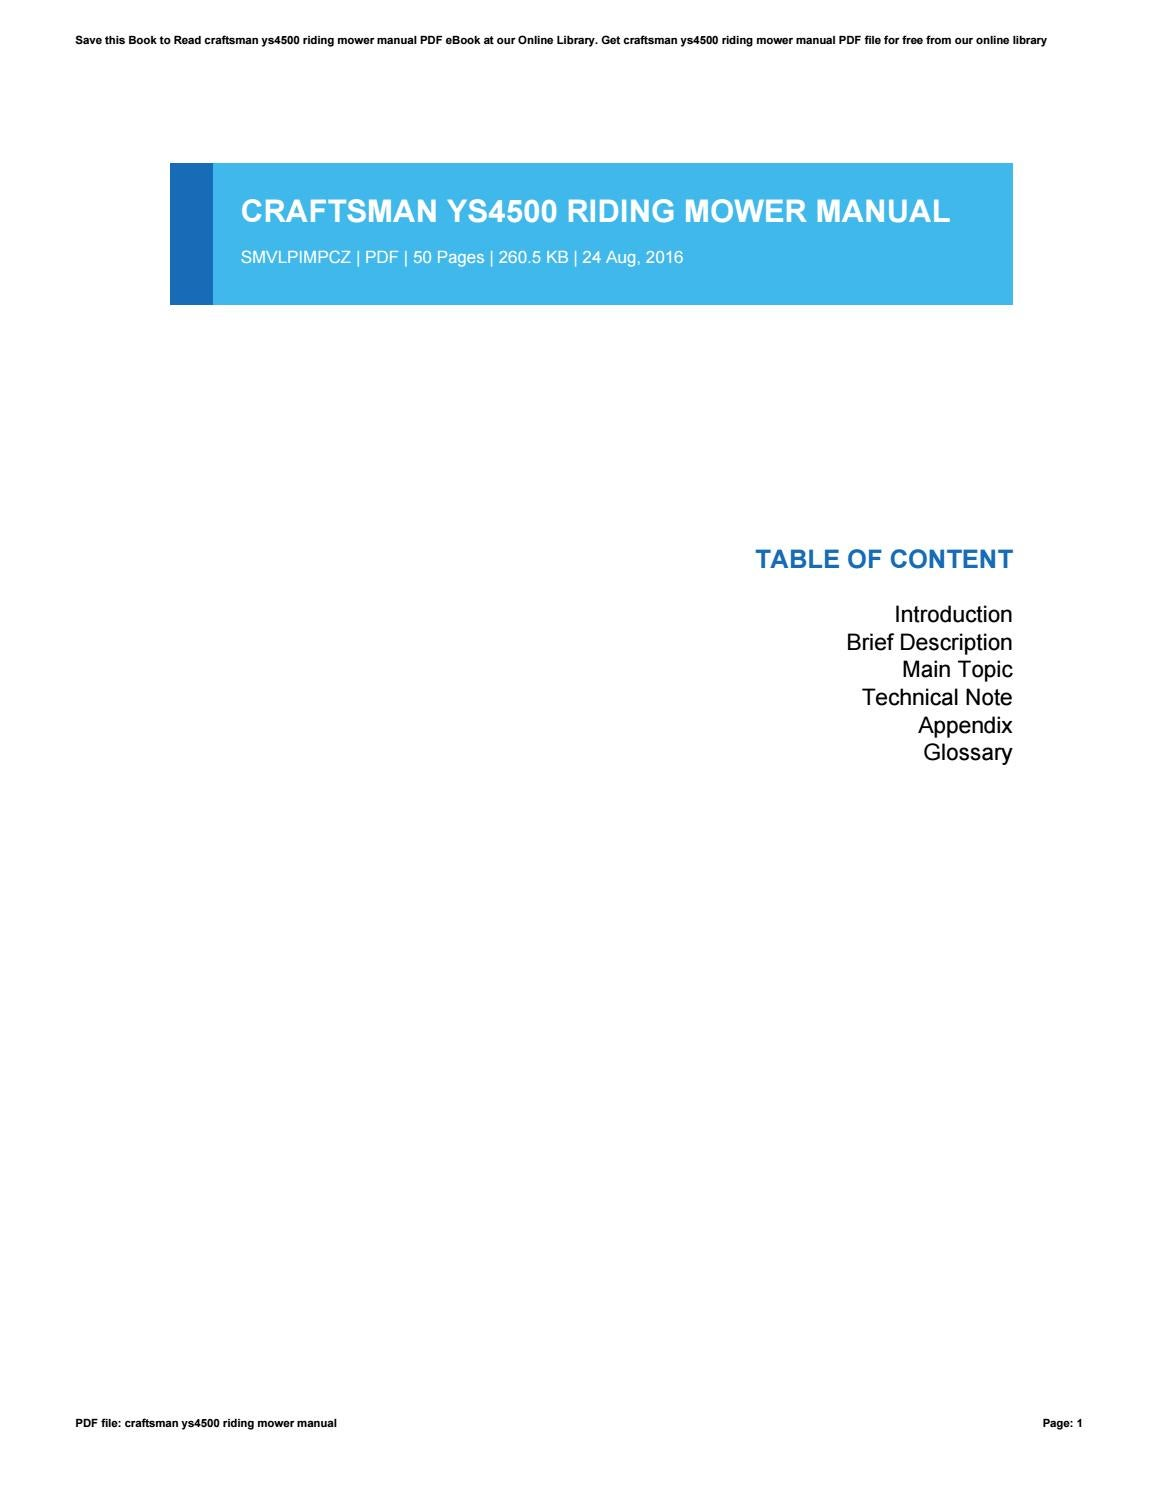 Craftsman Mower Manual Pdf